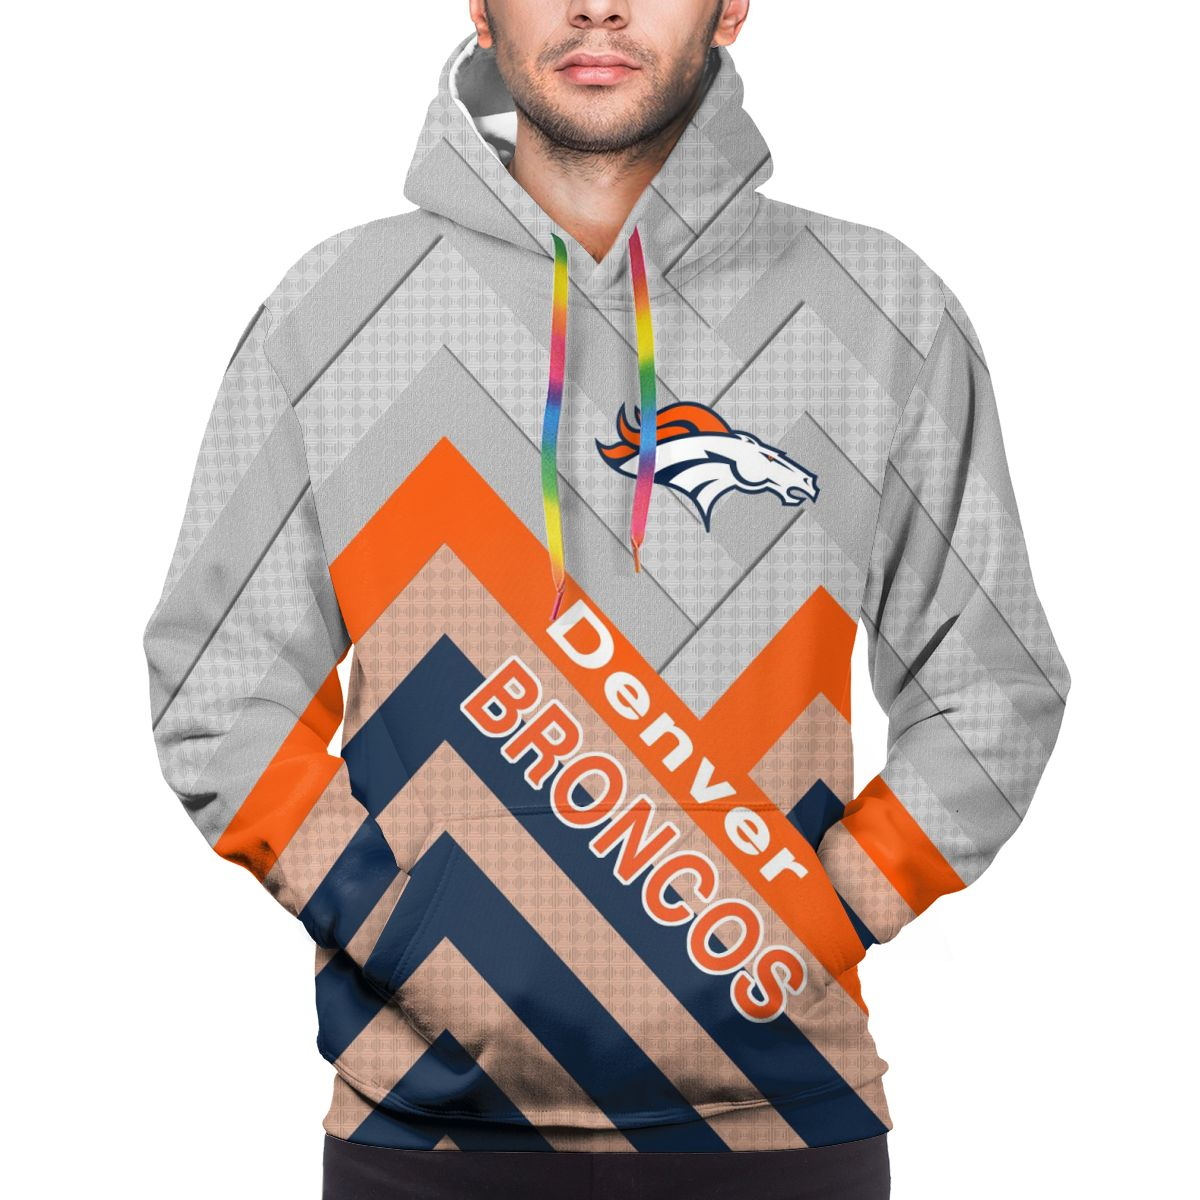 BRONCOS Logo Print Hoodies For Men Pullover Sweatshirt